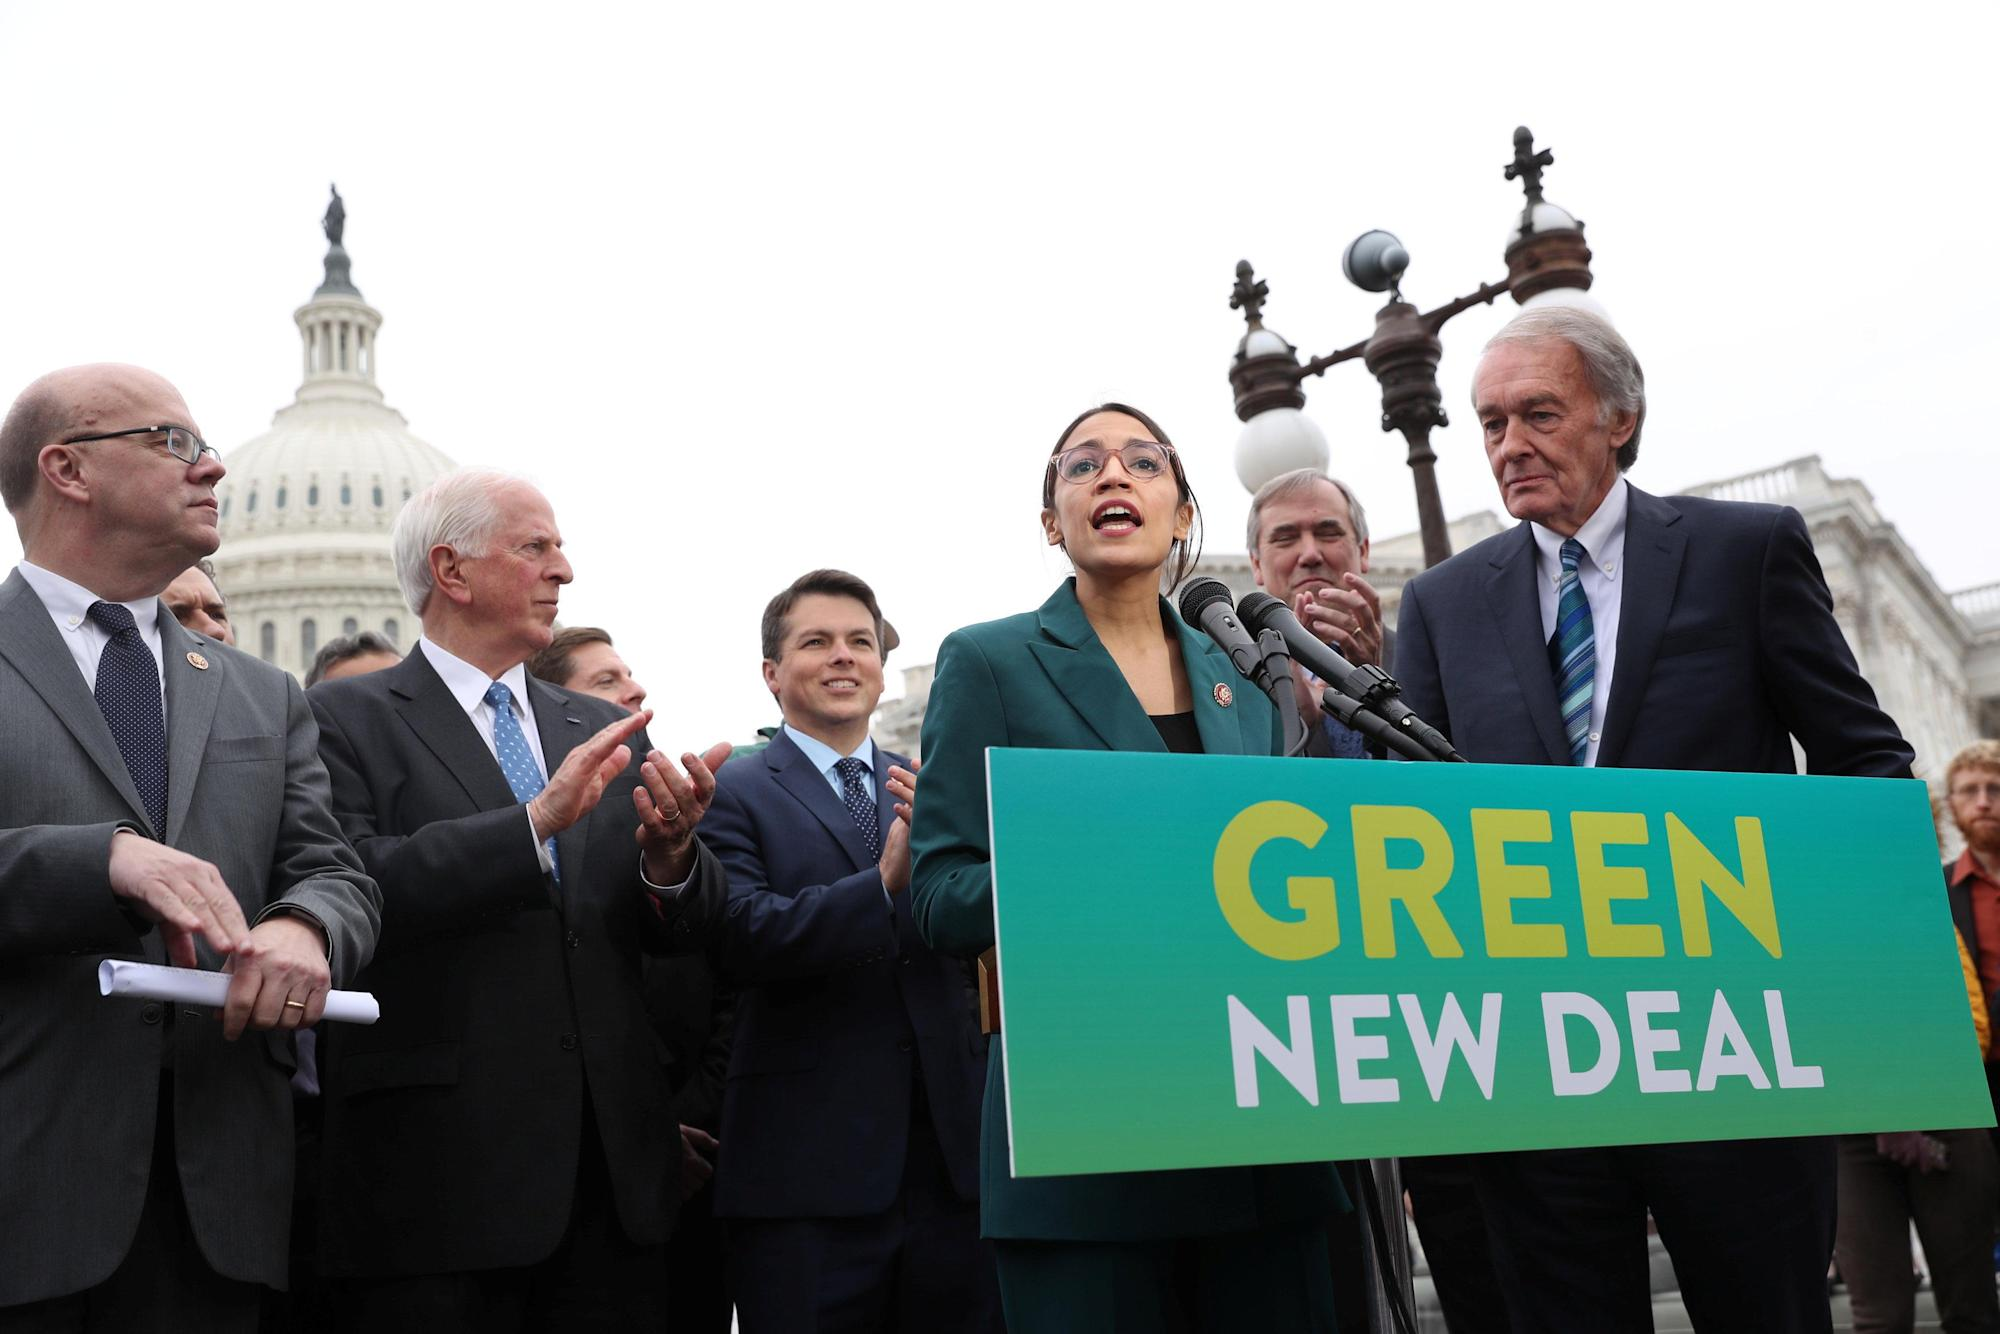 Green New Deal set to be reintroduced by Markey and Ocasio-Cortez